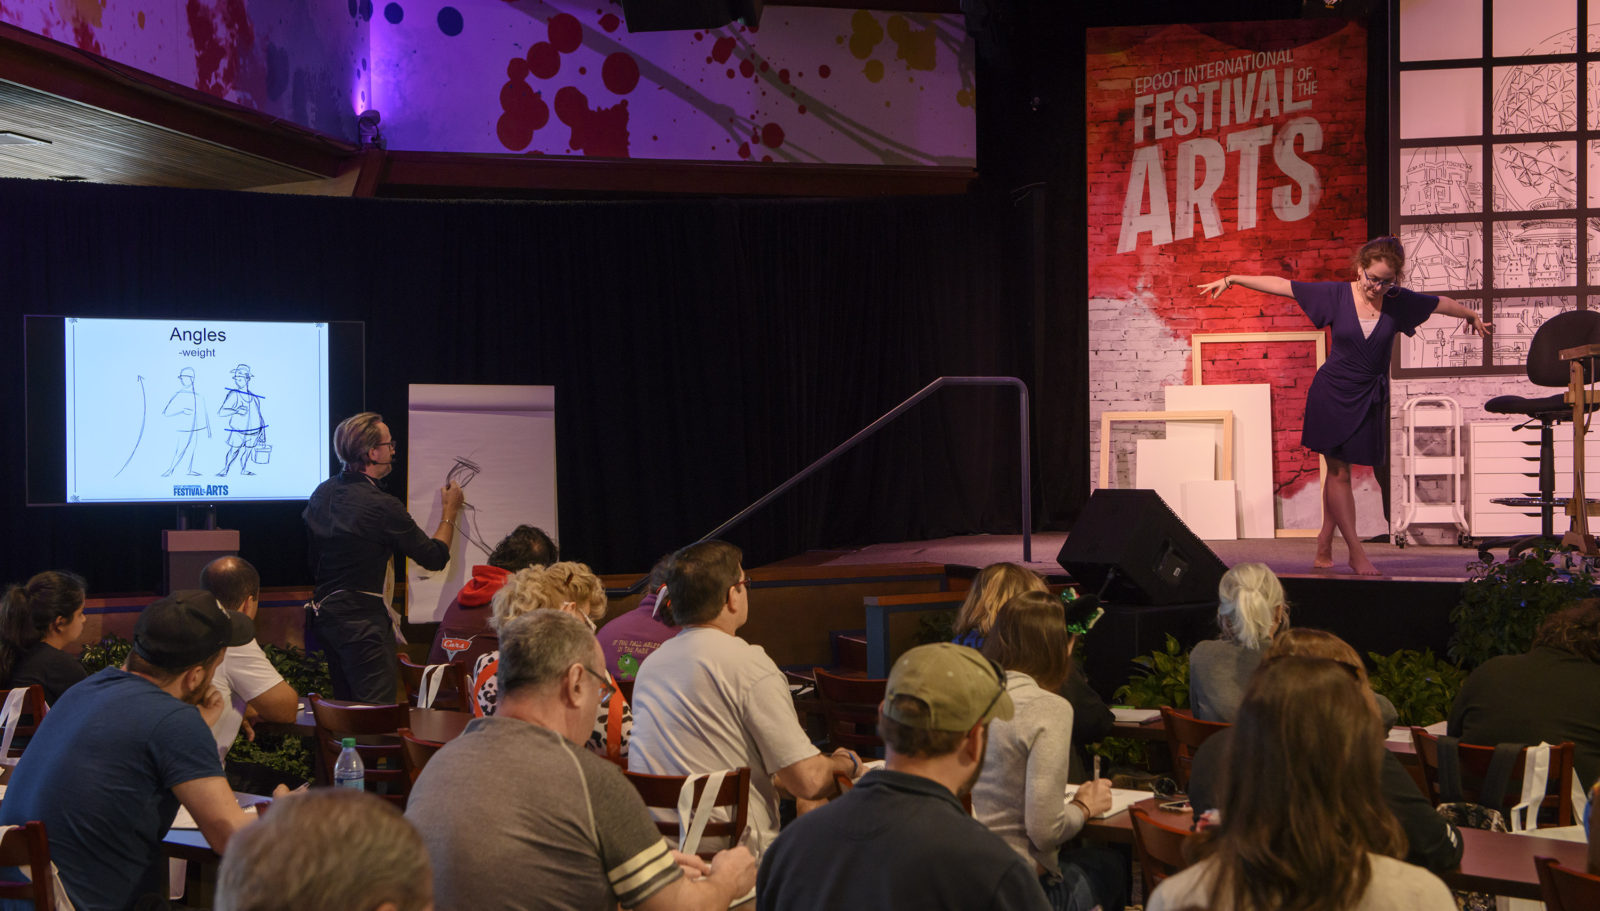 Epcot International Festival of the Arts - Seminar